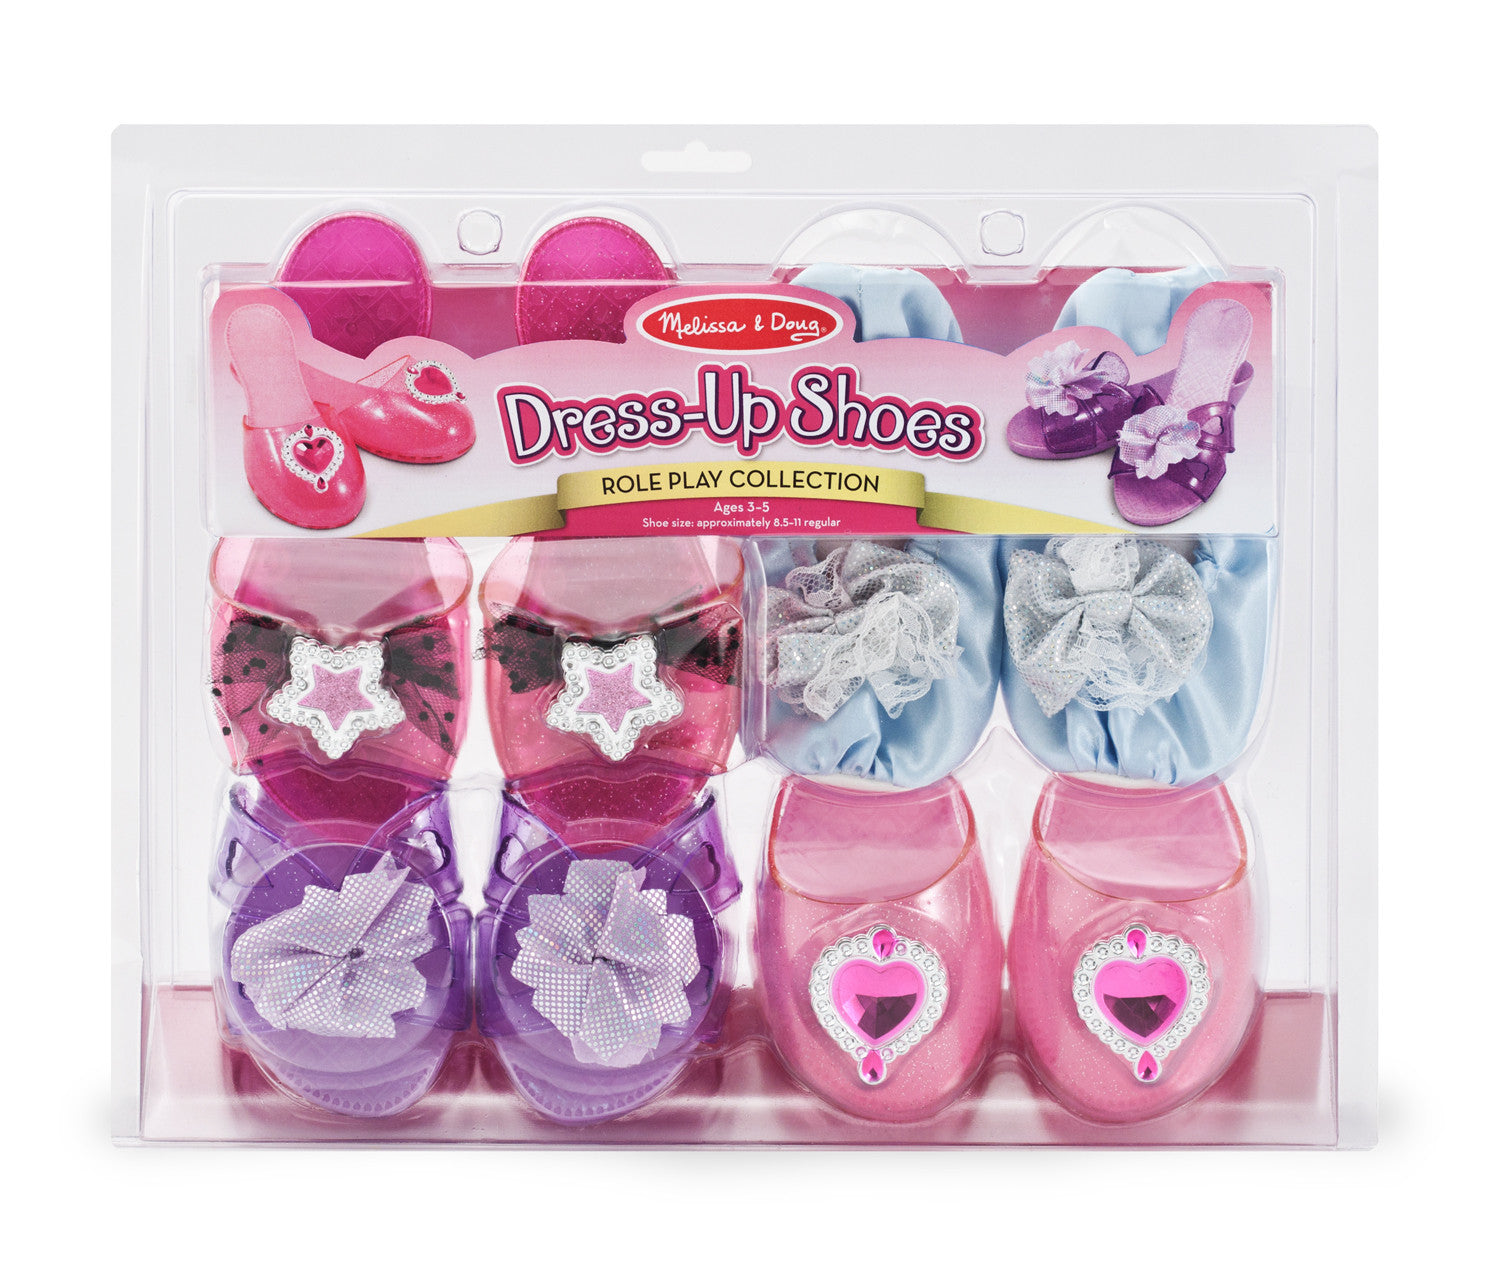 Melissa & Doug Dress-Up Shoes - Role Play Collection 8544